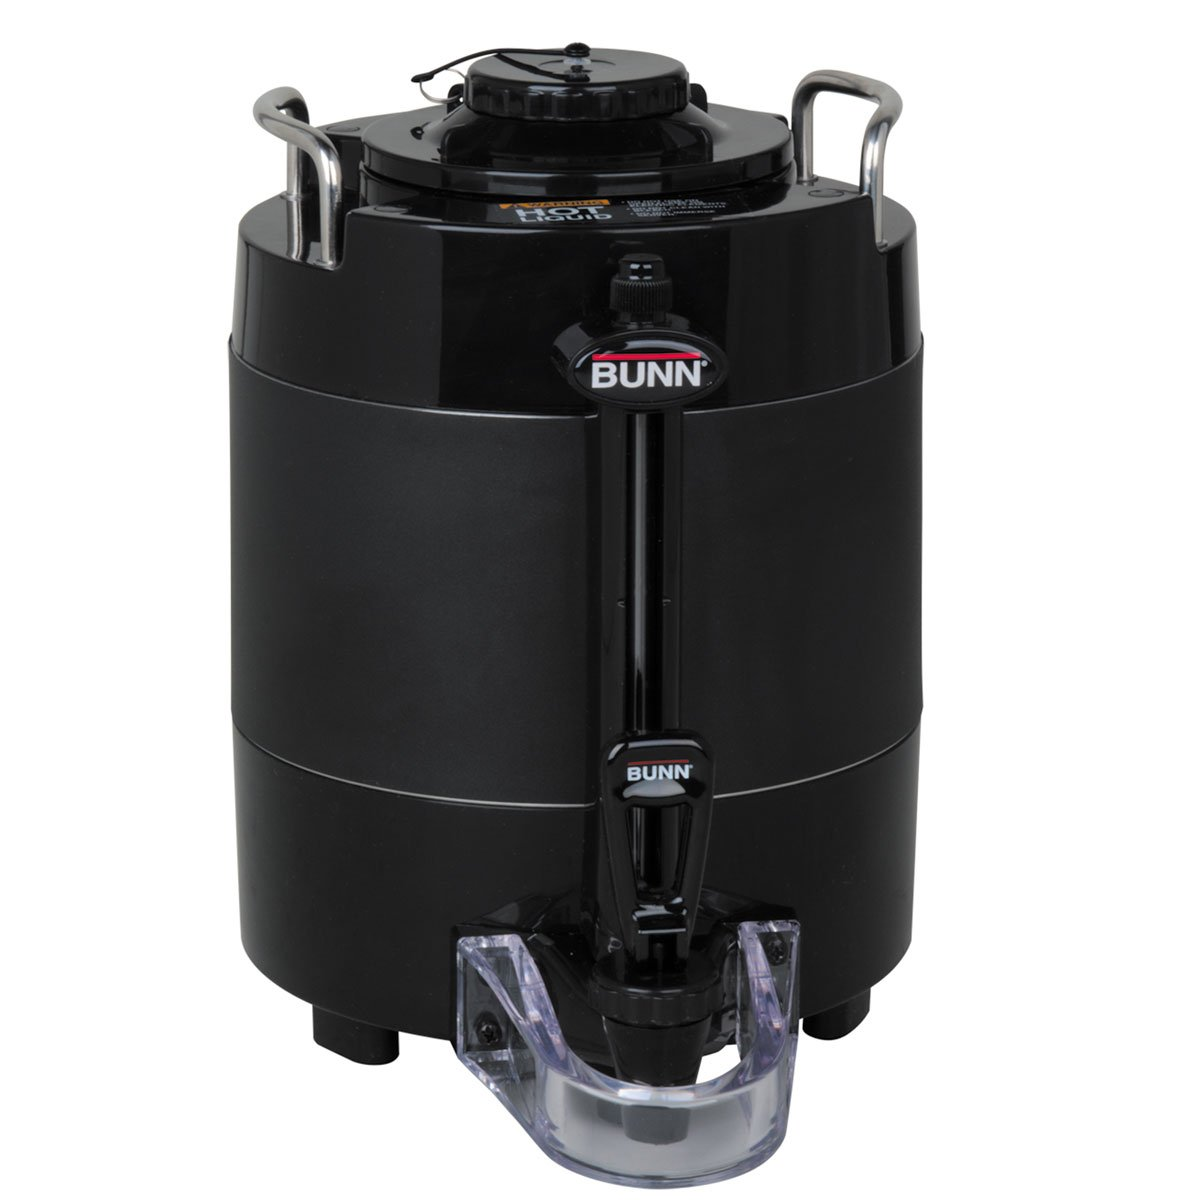 Bunn 44000.0051 TF ThermoFresh Server with Mechanical Sight Gauge Without Base, 1 Gallon Capacity in Black